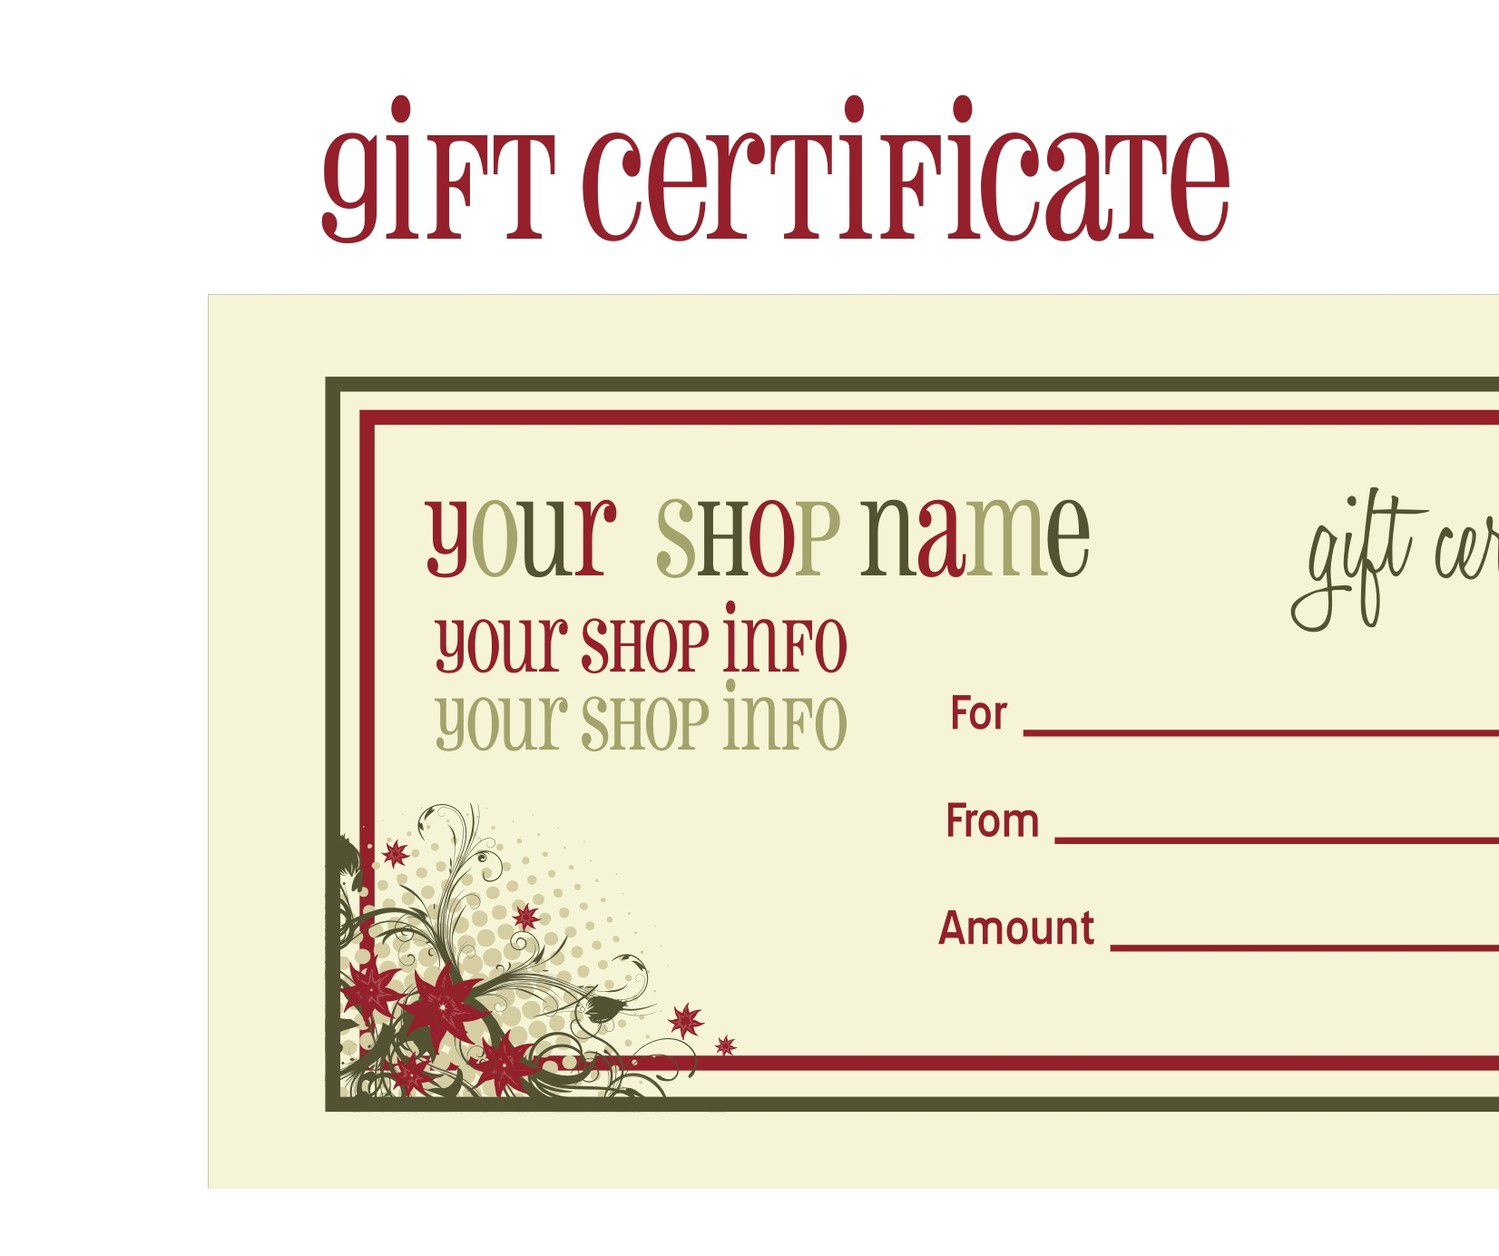 009 Wondrou Template For Christma Gift Certificate Free Image  Voucher Uk Editable Download Microsoft WordFull